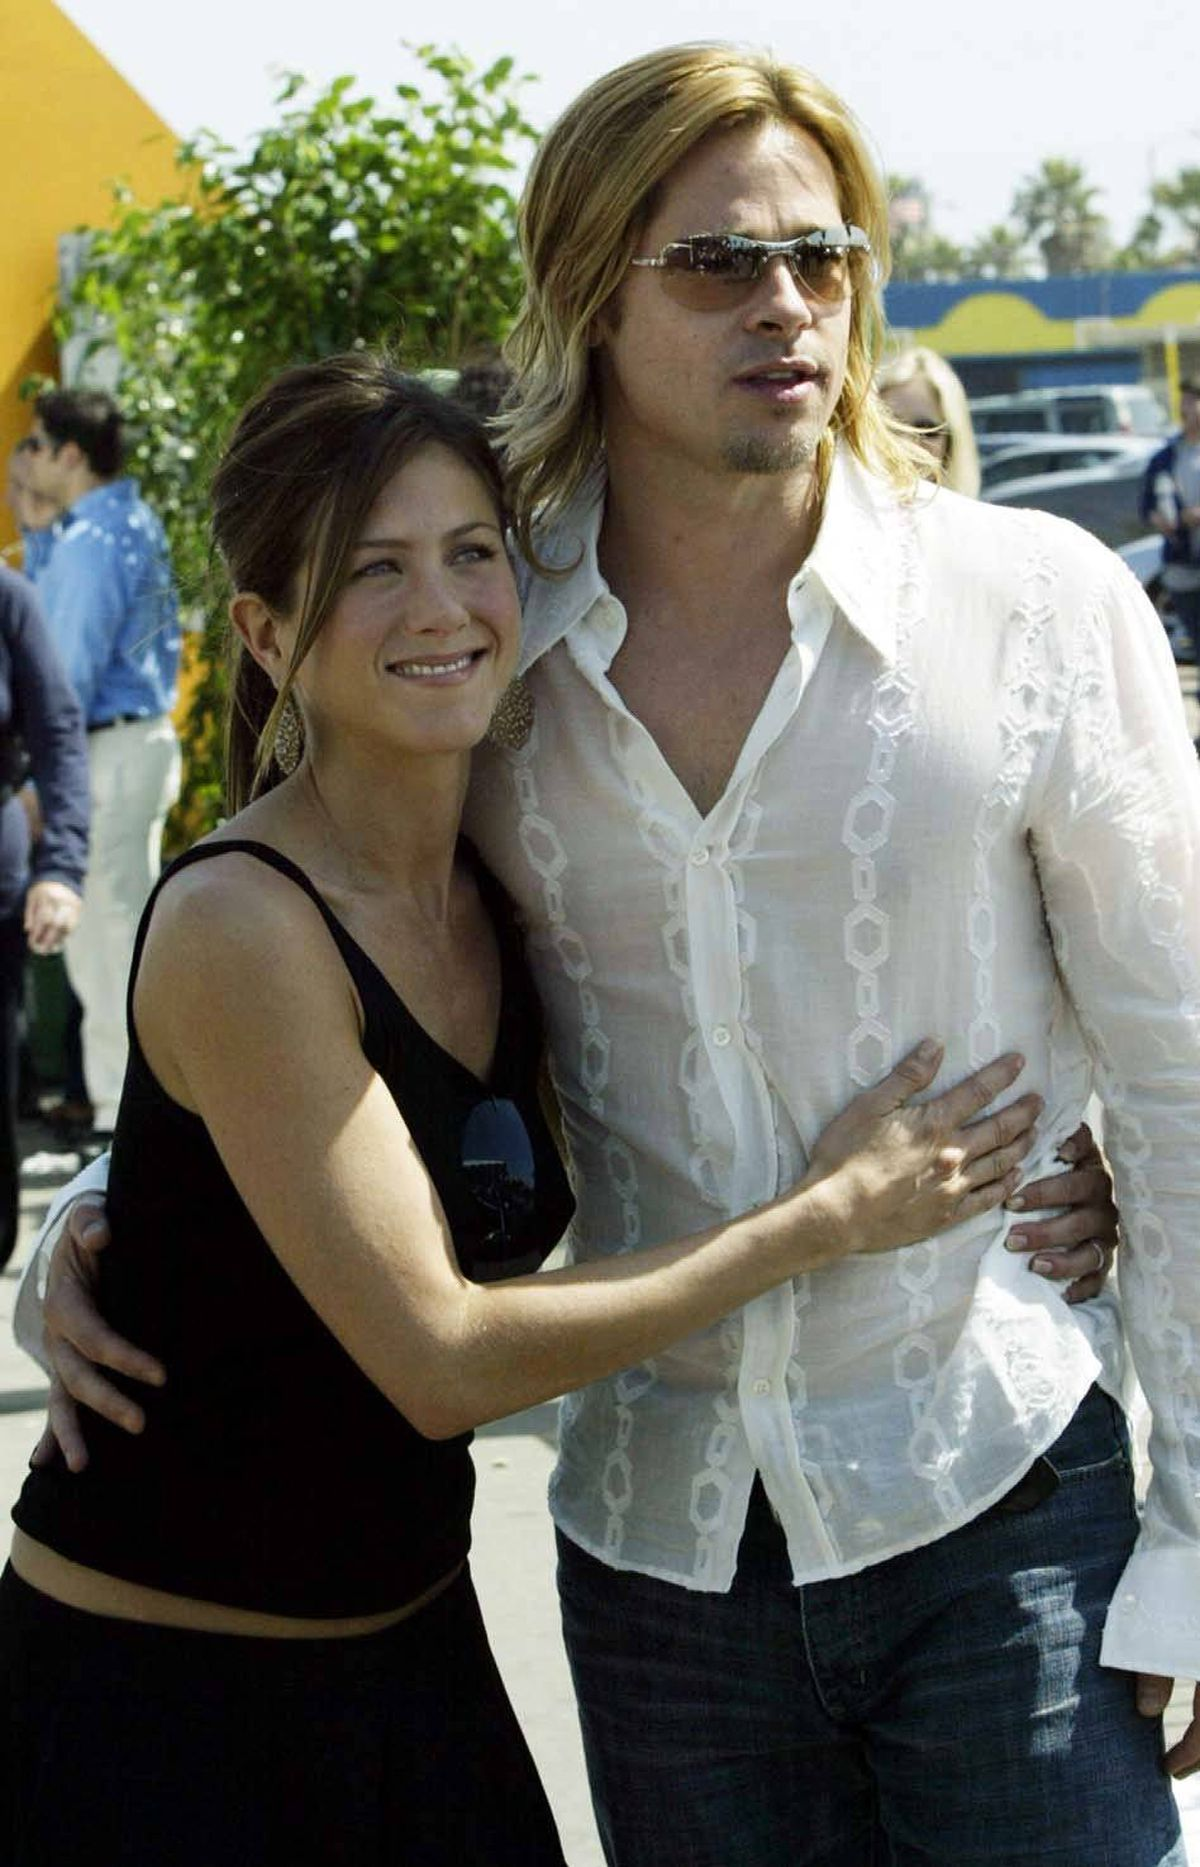 You're right, Jennifer: He does look like a lot more fun and way younger at the 2003 Spirit Awards in Santa Monica, Calif.